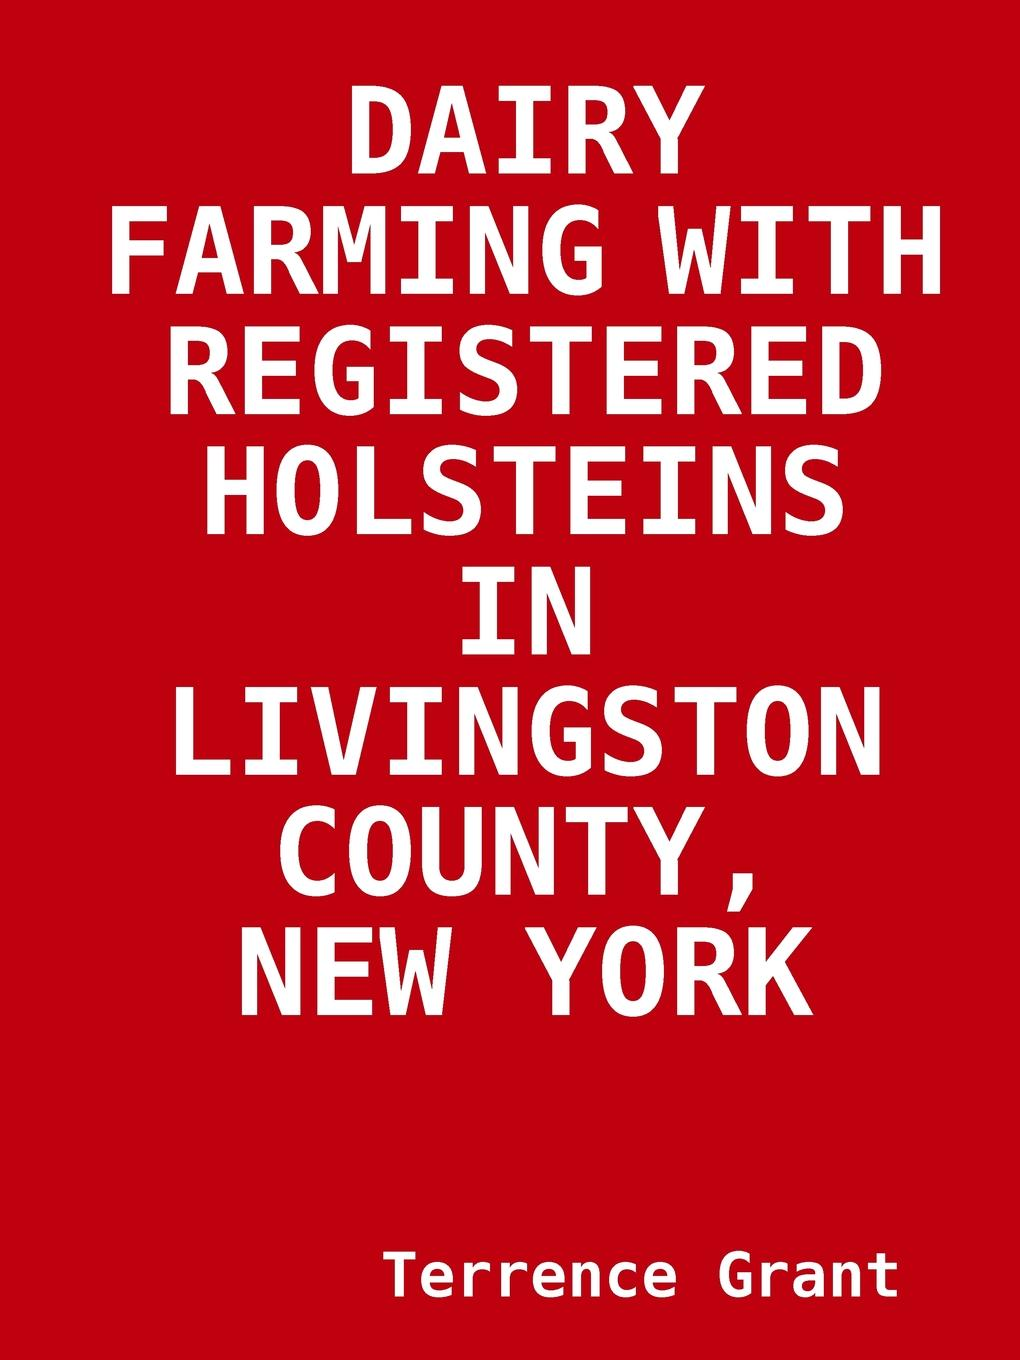 Terrence Grant DAIRY FARMING WITH REGISTERED HOLSTEINS IN LIVINGSTON COUNTY, NEW YORK t apoleon cheney historical sketch of the chemung valley new york elmira and chemung county and broome herkimer livingston montgomery onondaga ontario otsego schoharie schuyler steuben tioga ulster counties